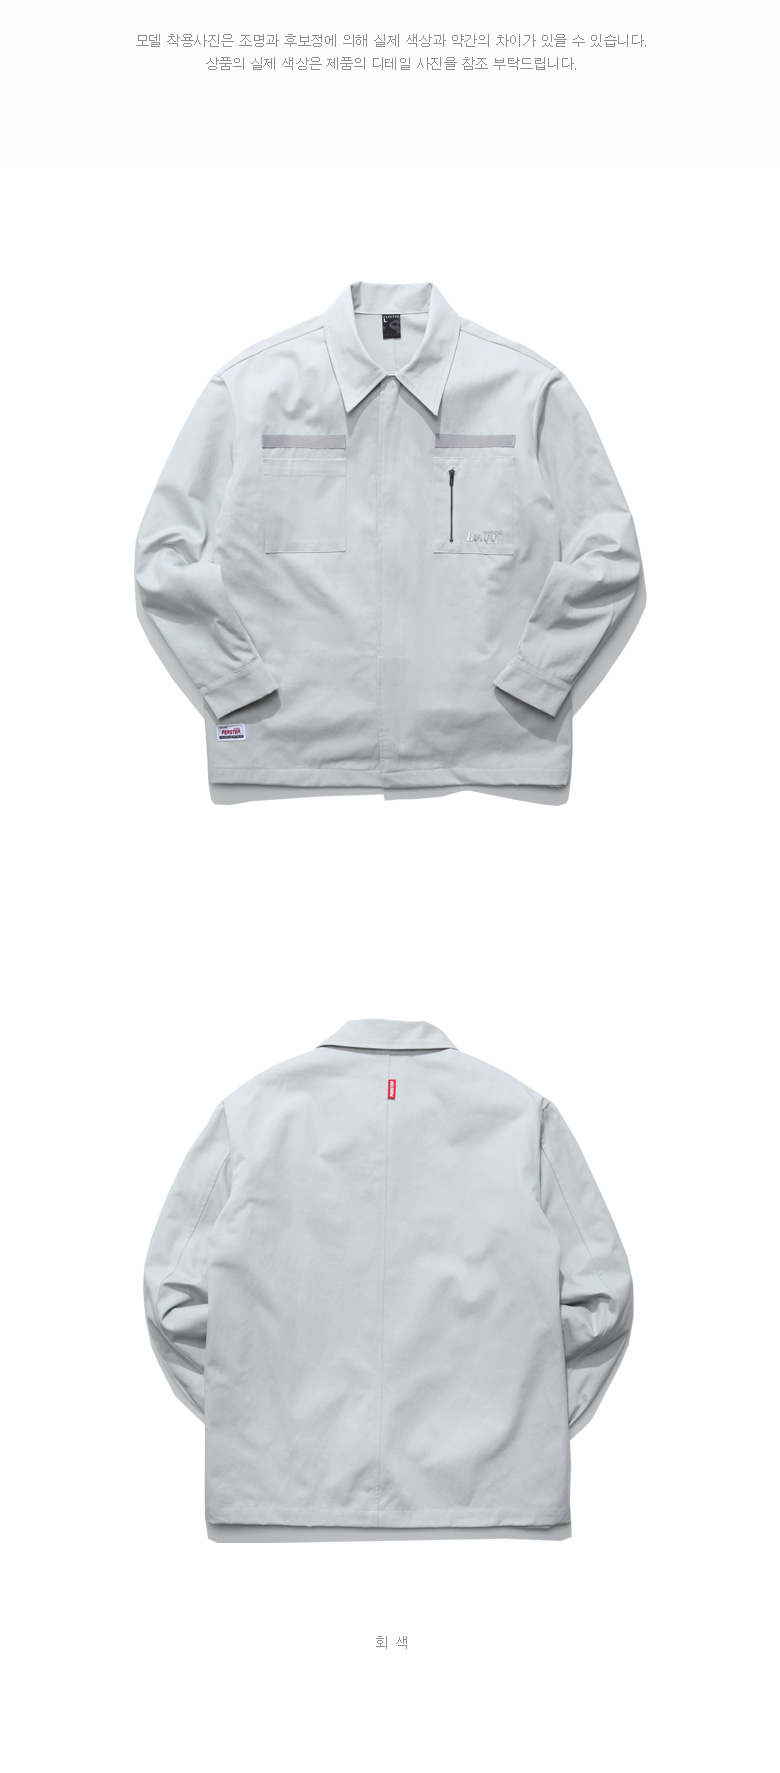 20190131_ps_level_shirt_gray_uk_01.jpg